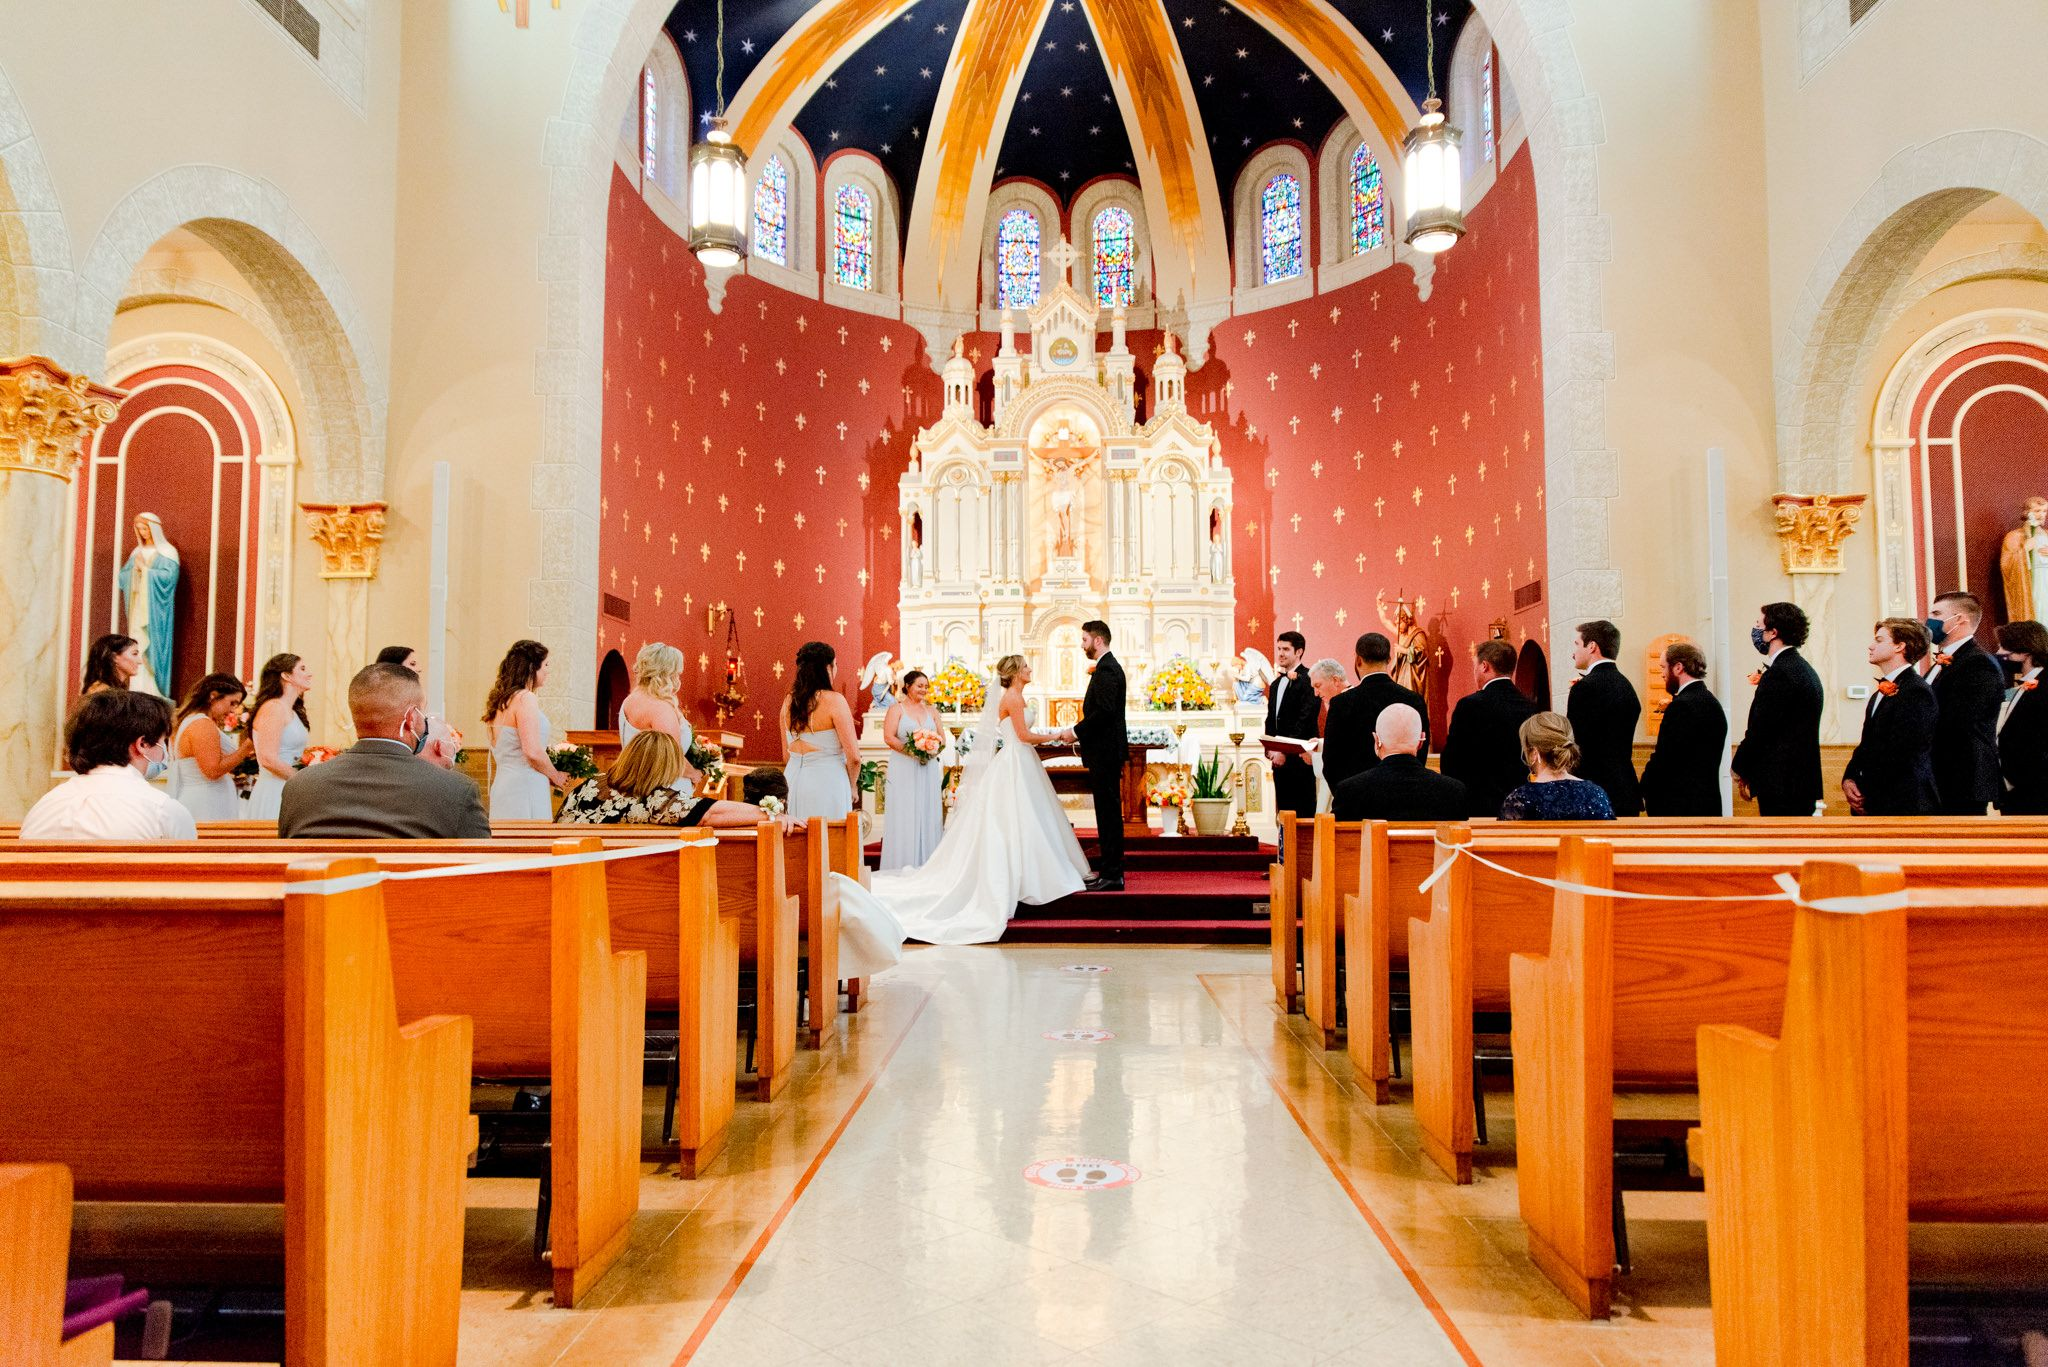 wide image of bride and groom at altar looking at each other and holding hands, showing wedding guests and the church